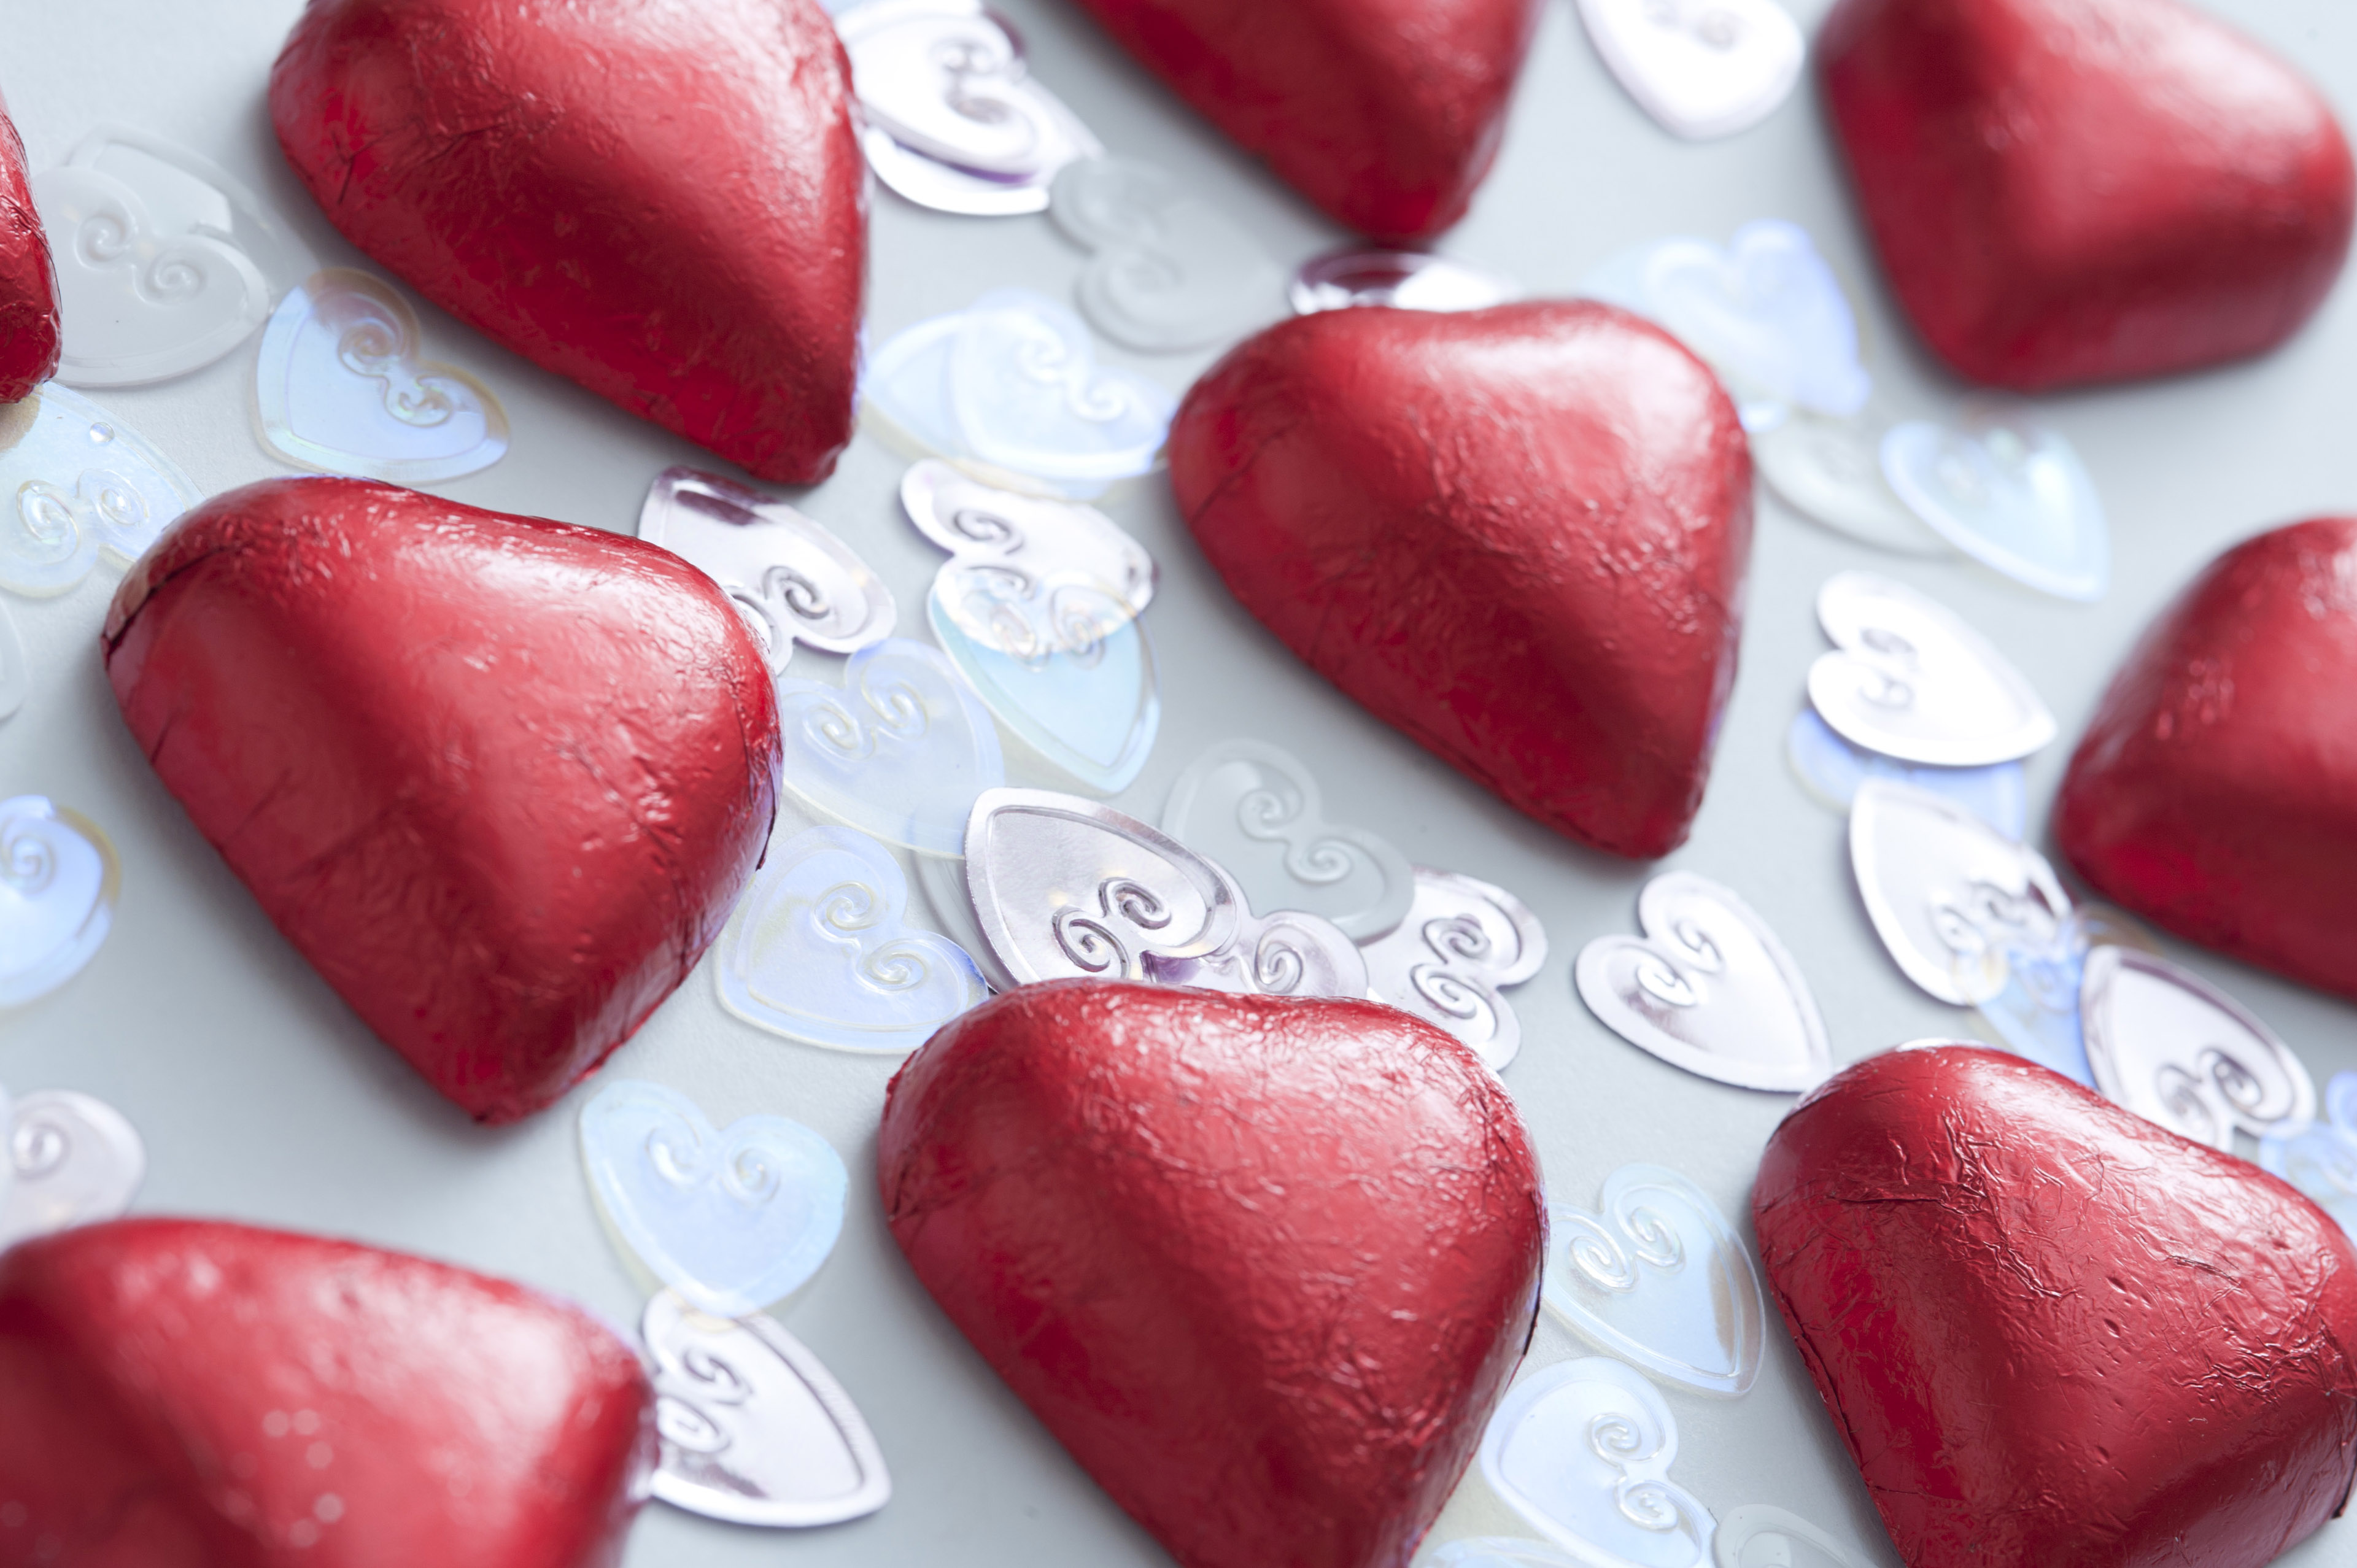 Rows of valentine heart-shaped chocolates in close-up